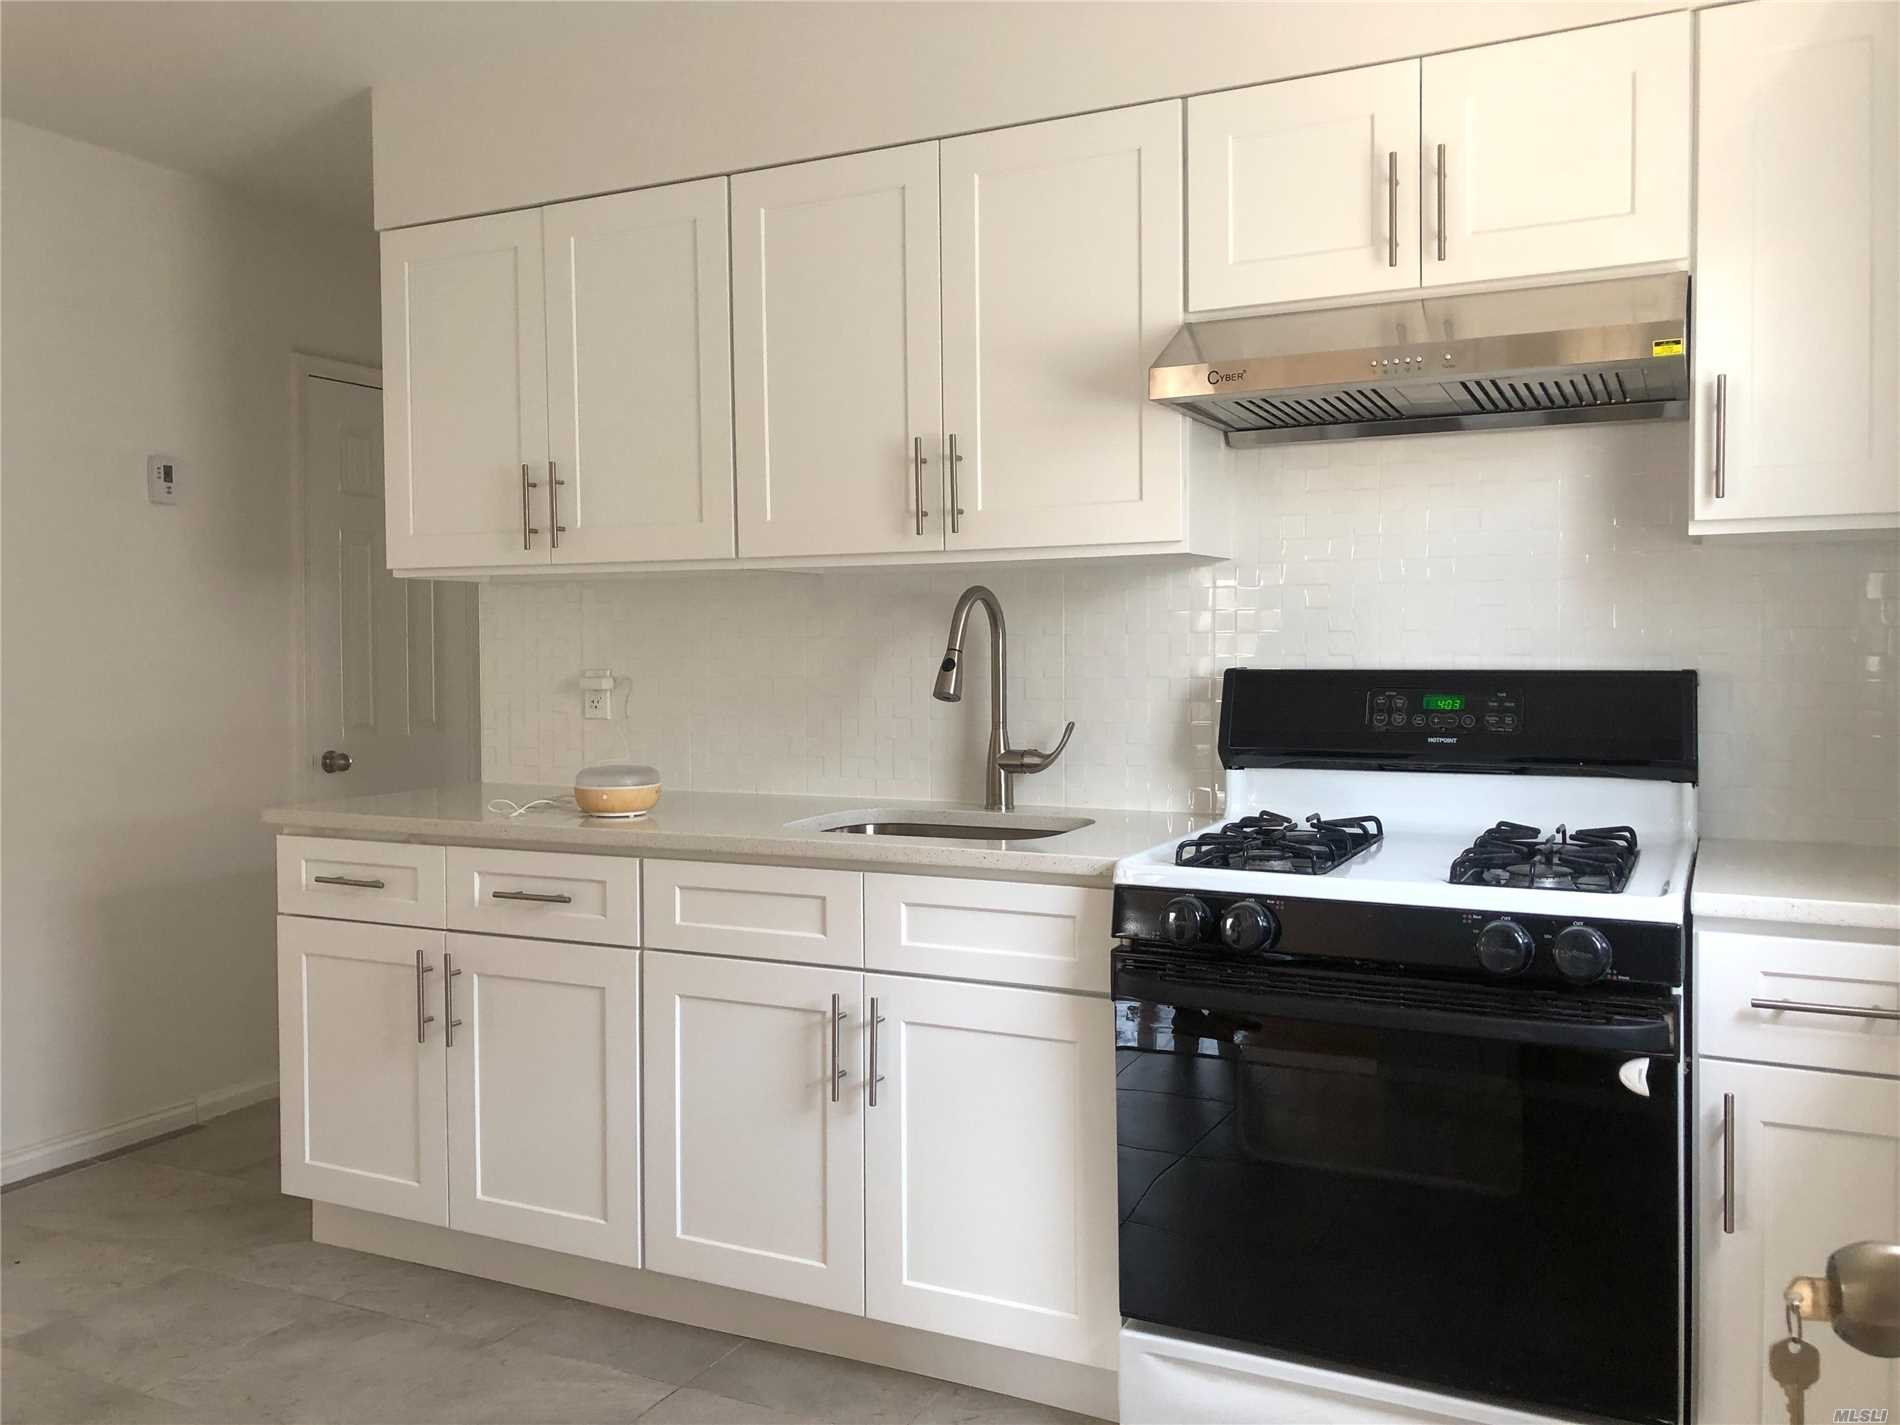 Newly renovated second floor apartment in a quiet neighborhood of whitestone. Plenty of sun exposure, good location and easy street parking. Place is move in ready!